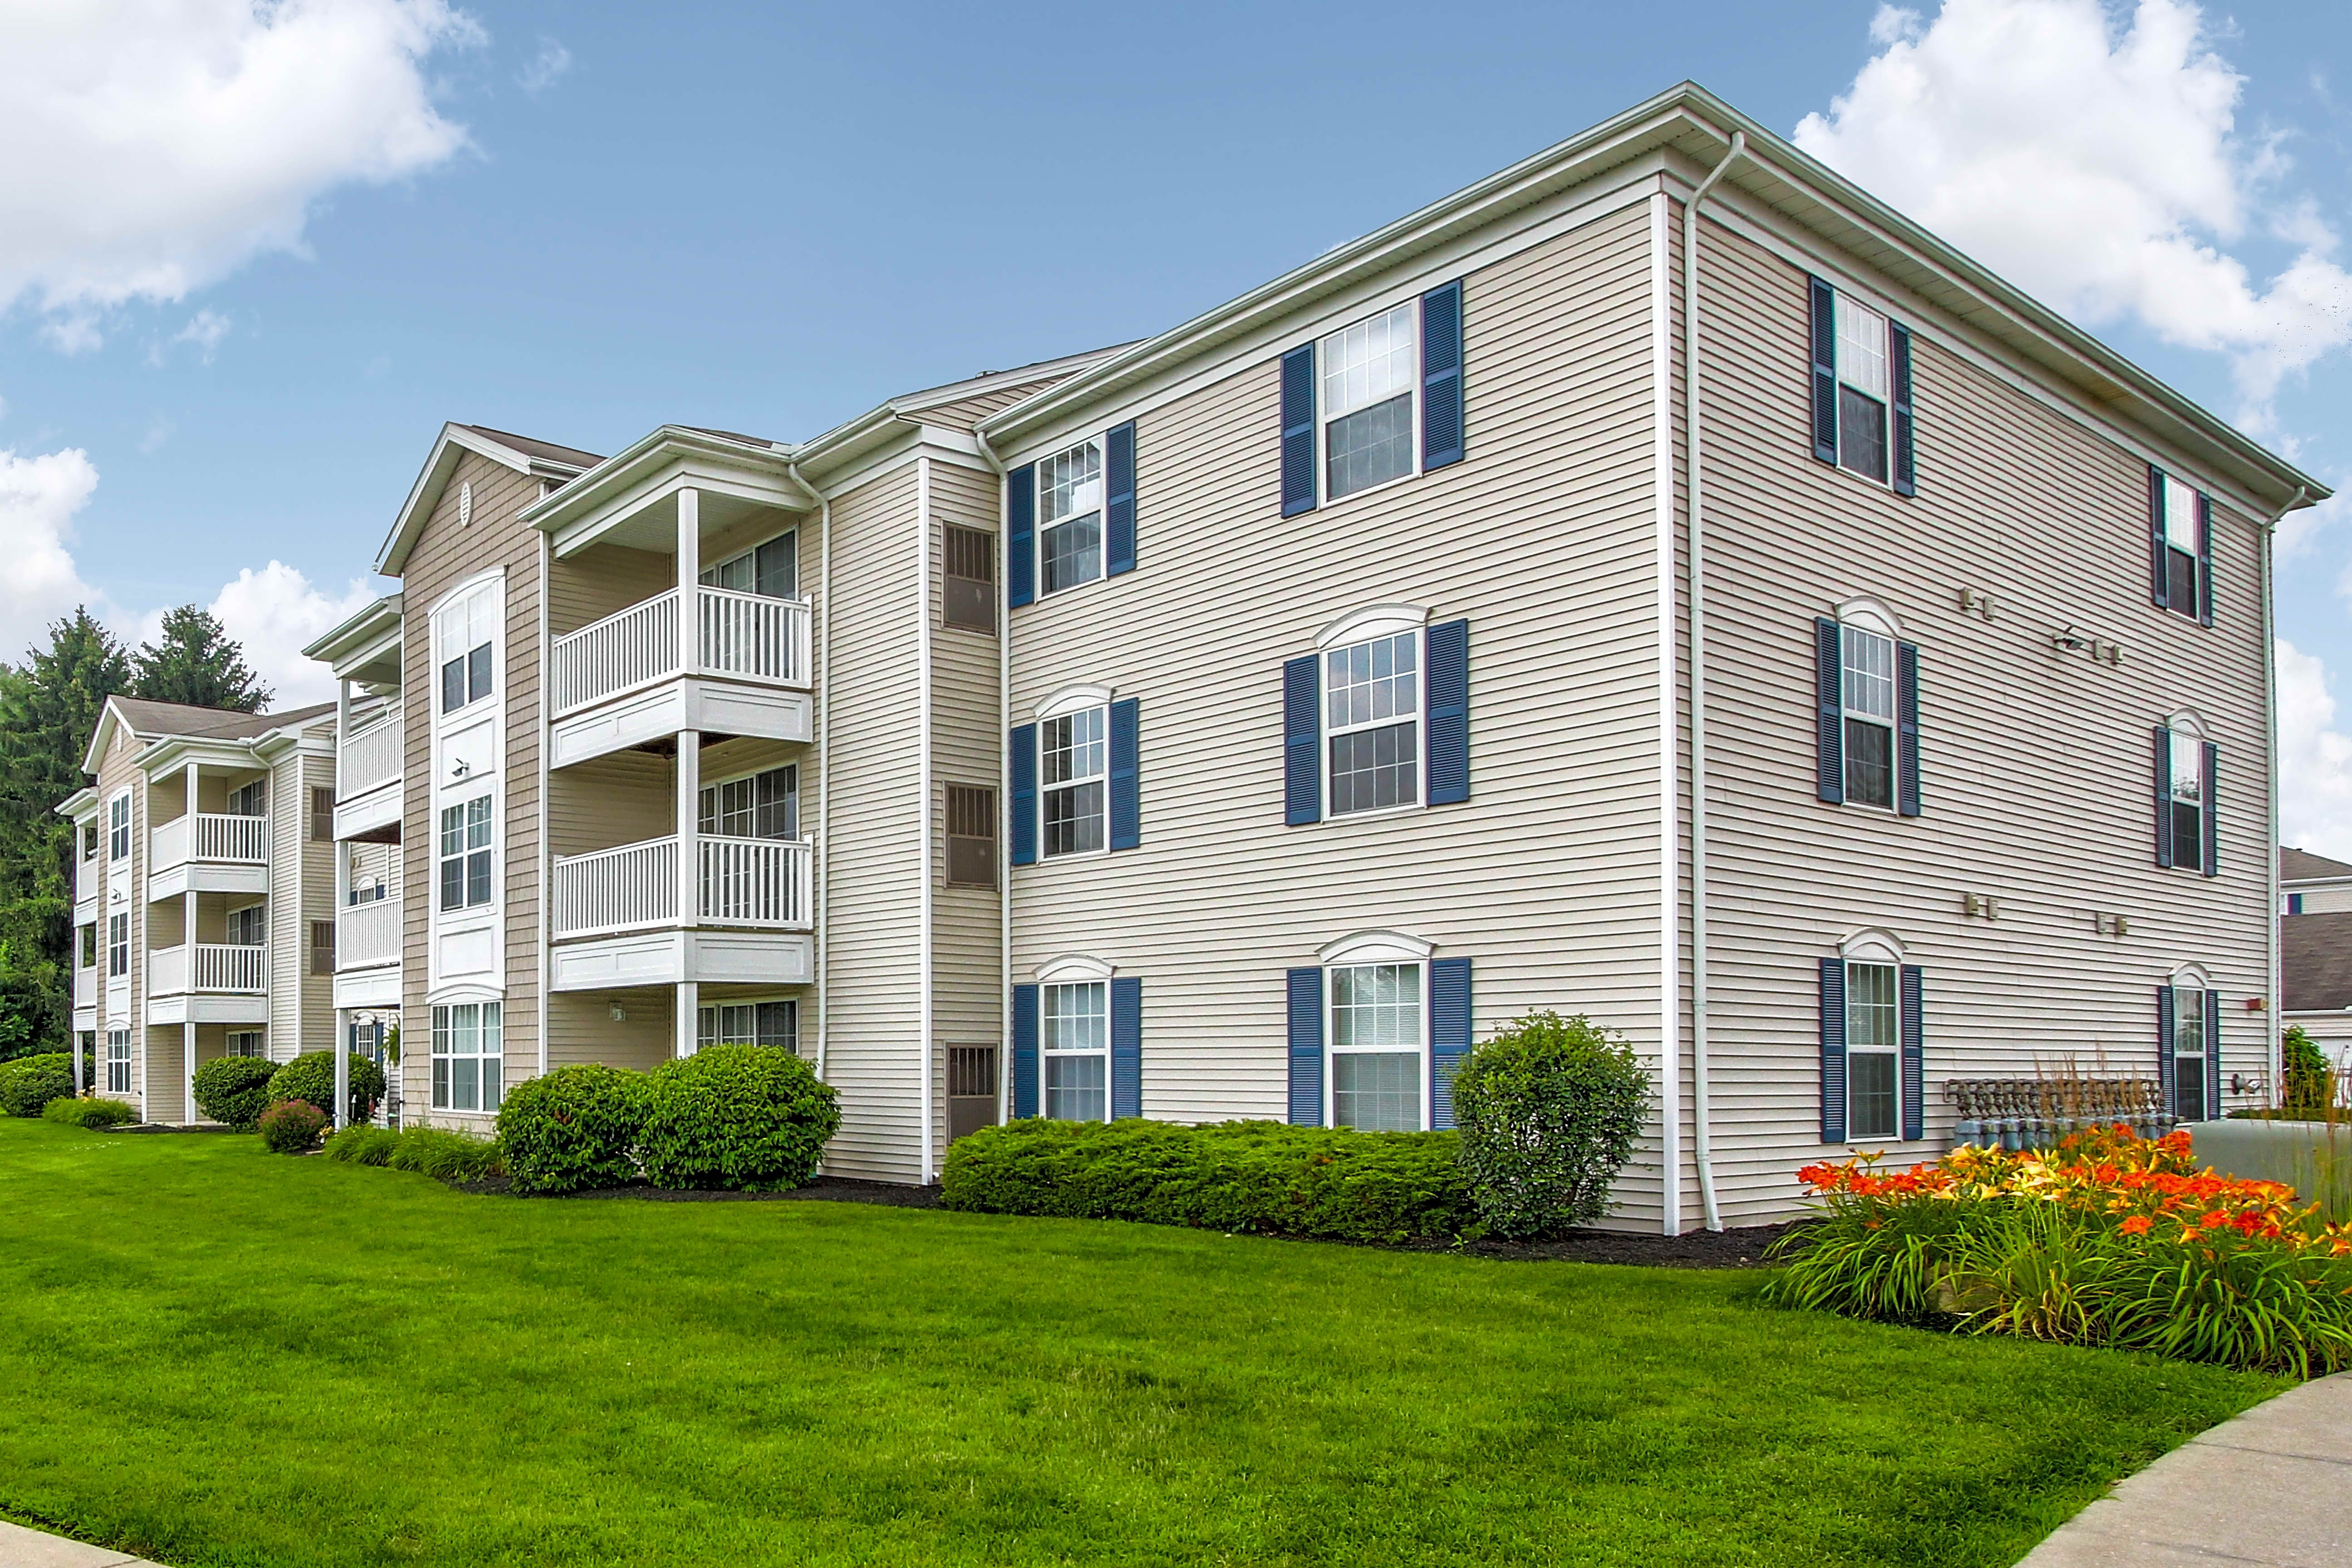 Apartments Near Kent State Sutton Crossings Apartments for Kent State University Students in Kent, OH